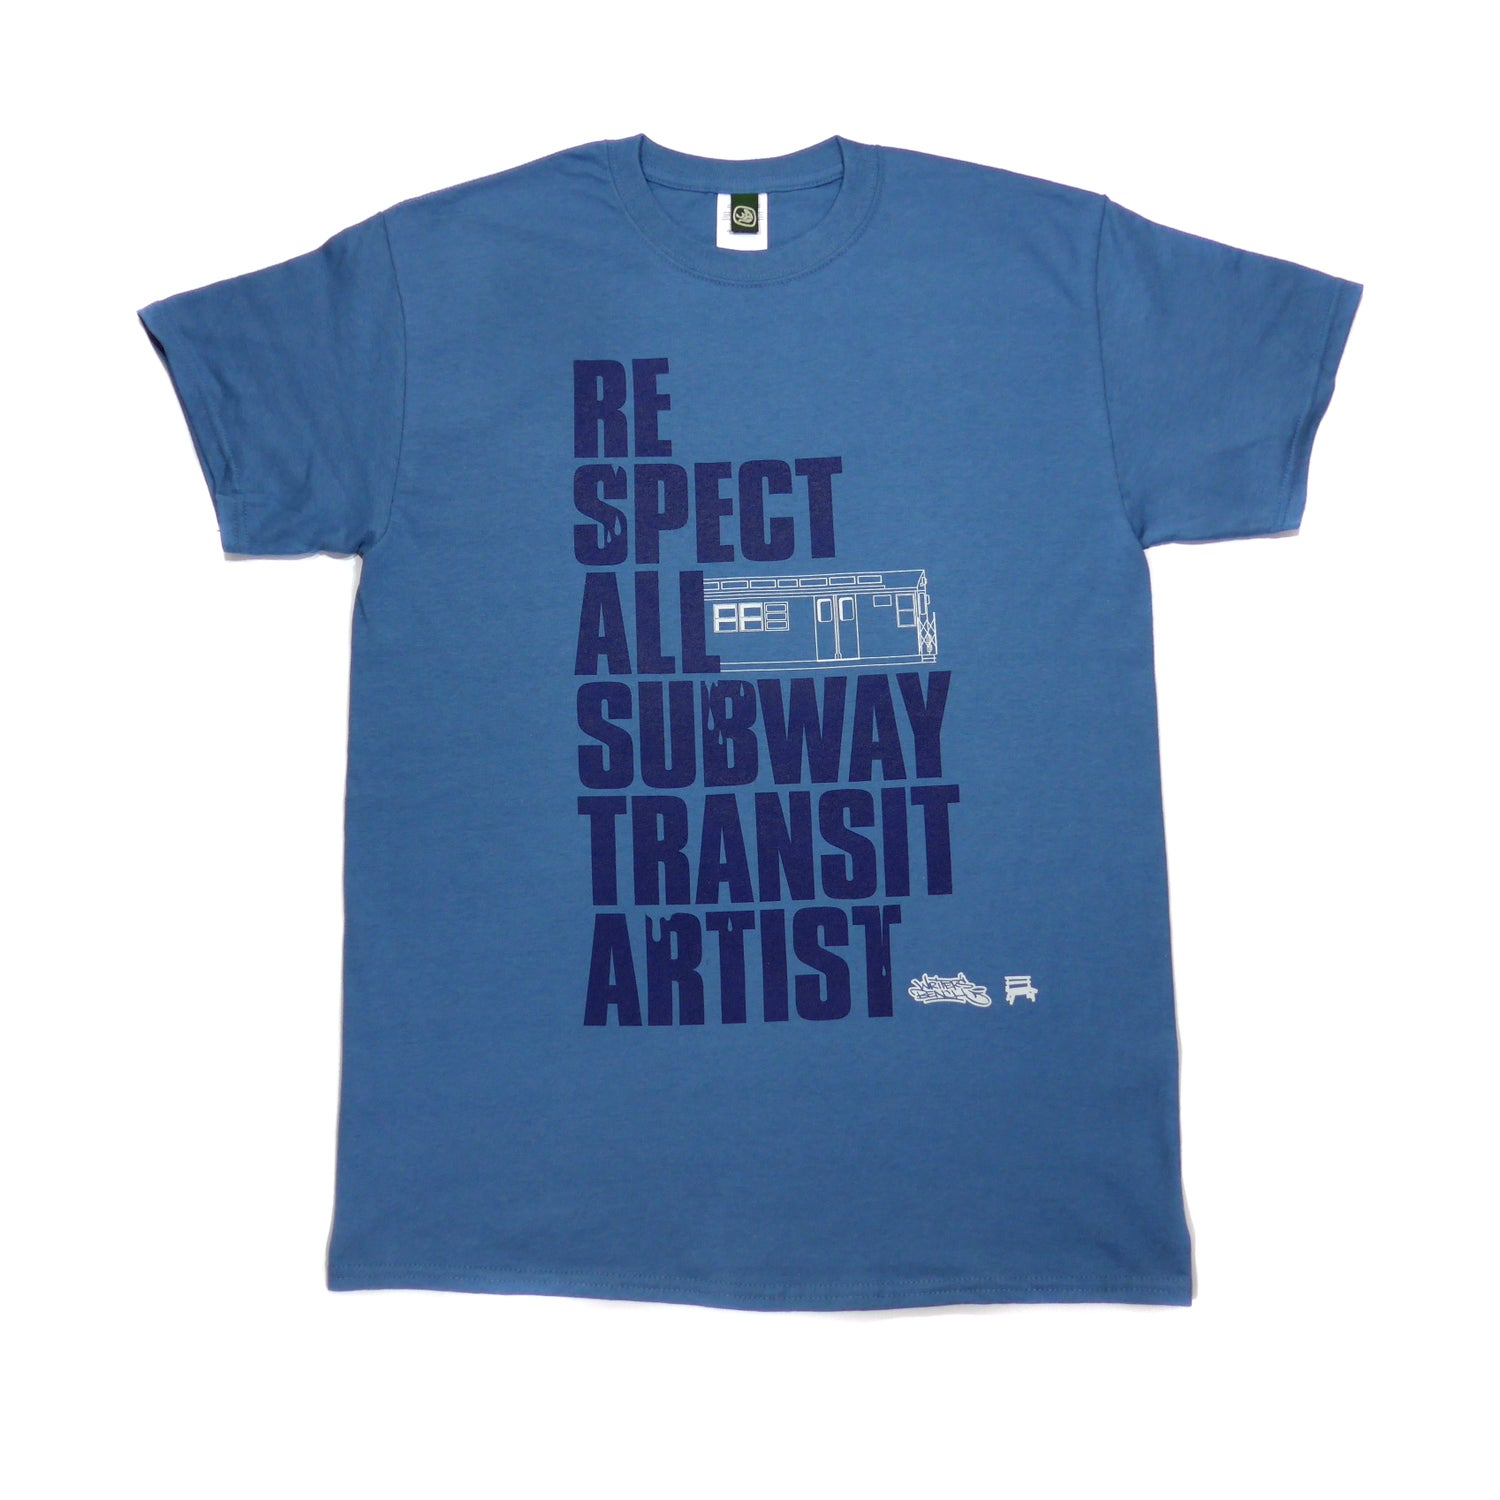 Image of Respect All Subway Transit Artists T-shirt